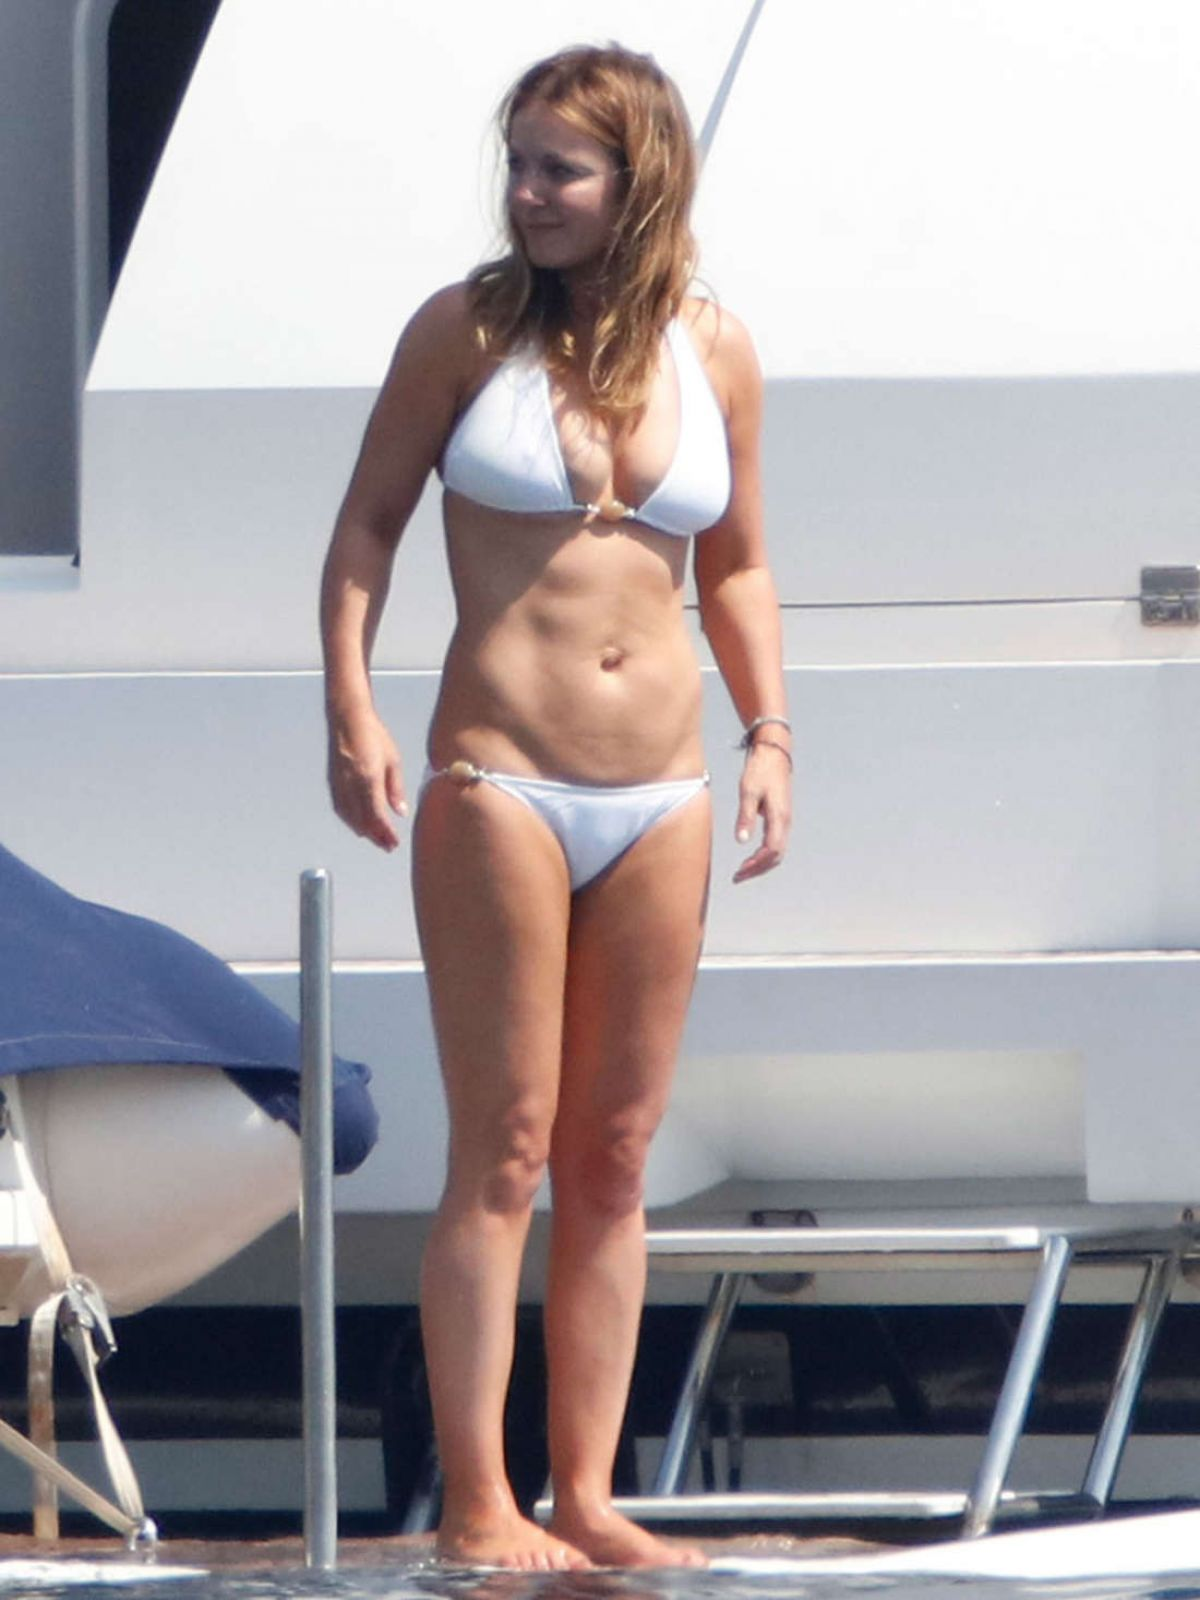 Teen Girls Legs And Feet Wallpapers Geri Halliwell In Bikini At A Boat In St Tropez 08 10